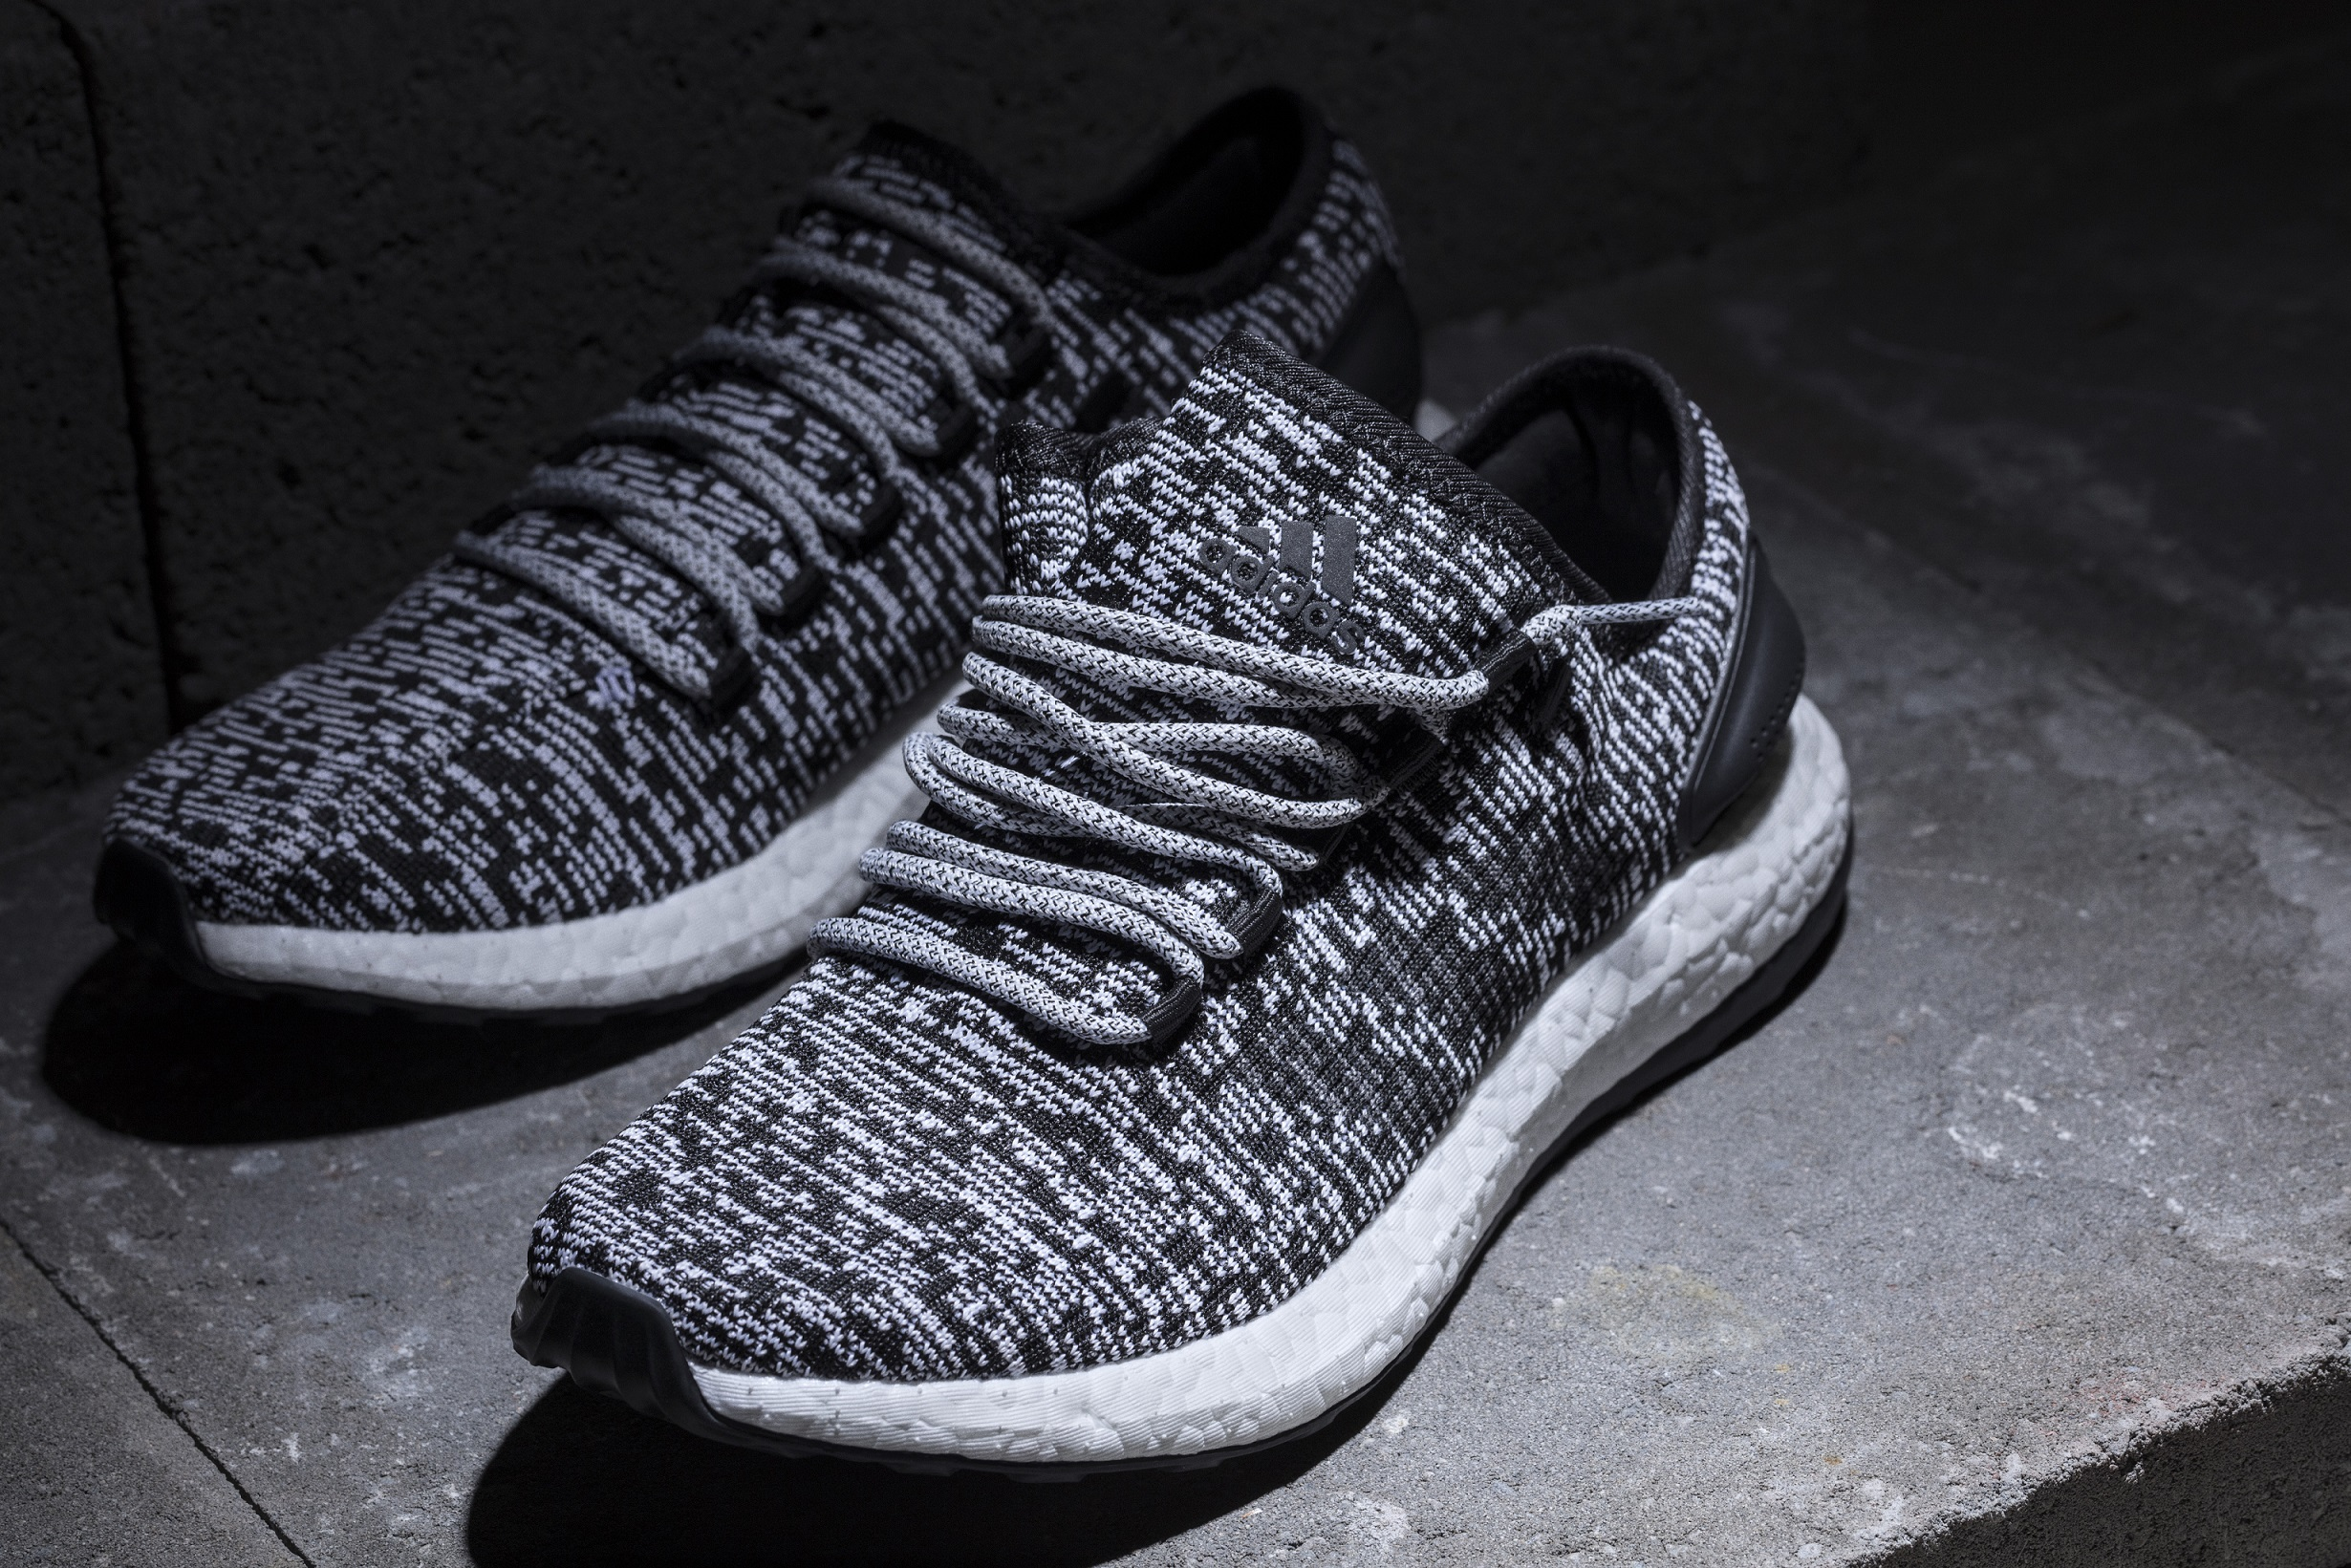 THIS IS THE ADIDAS PURE BOOST Keller Sports Guide